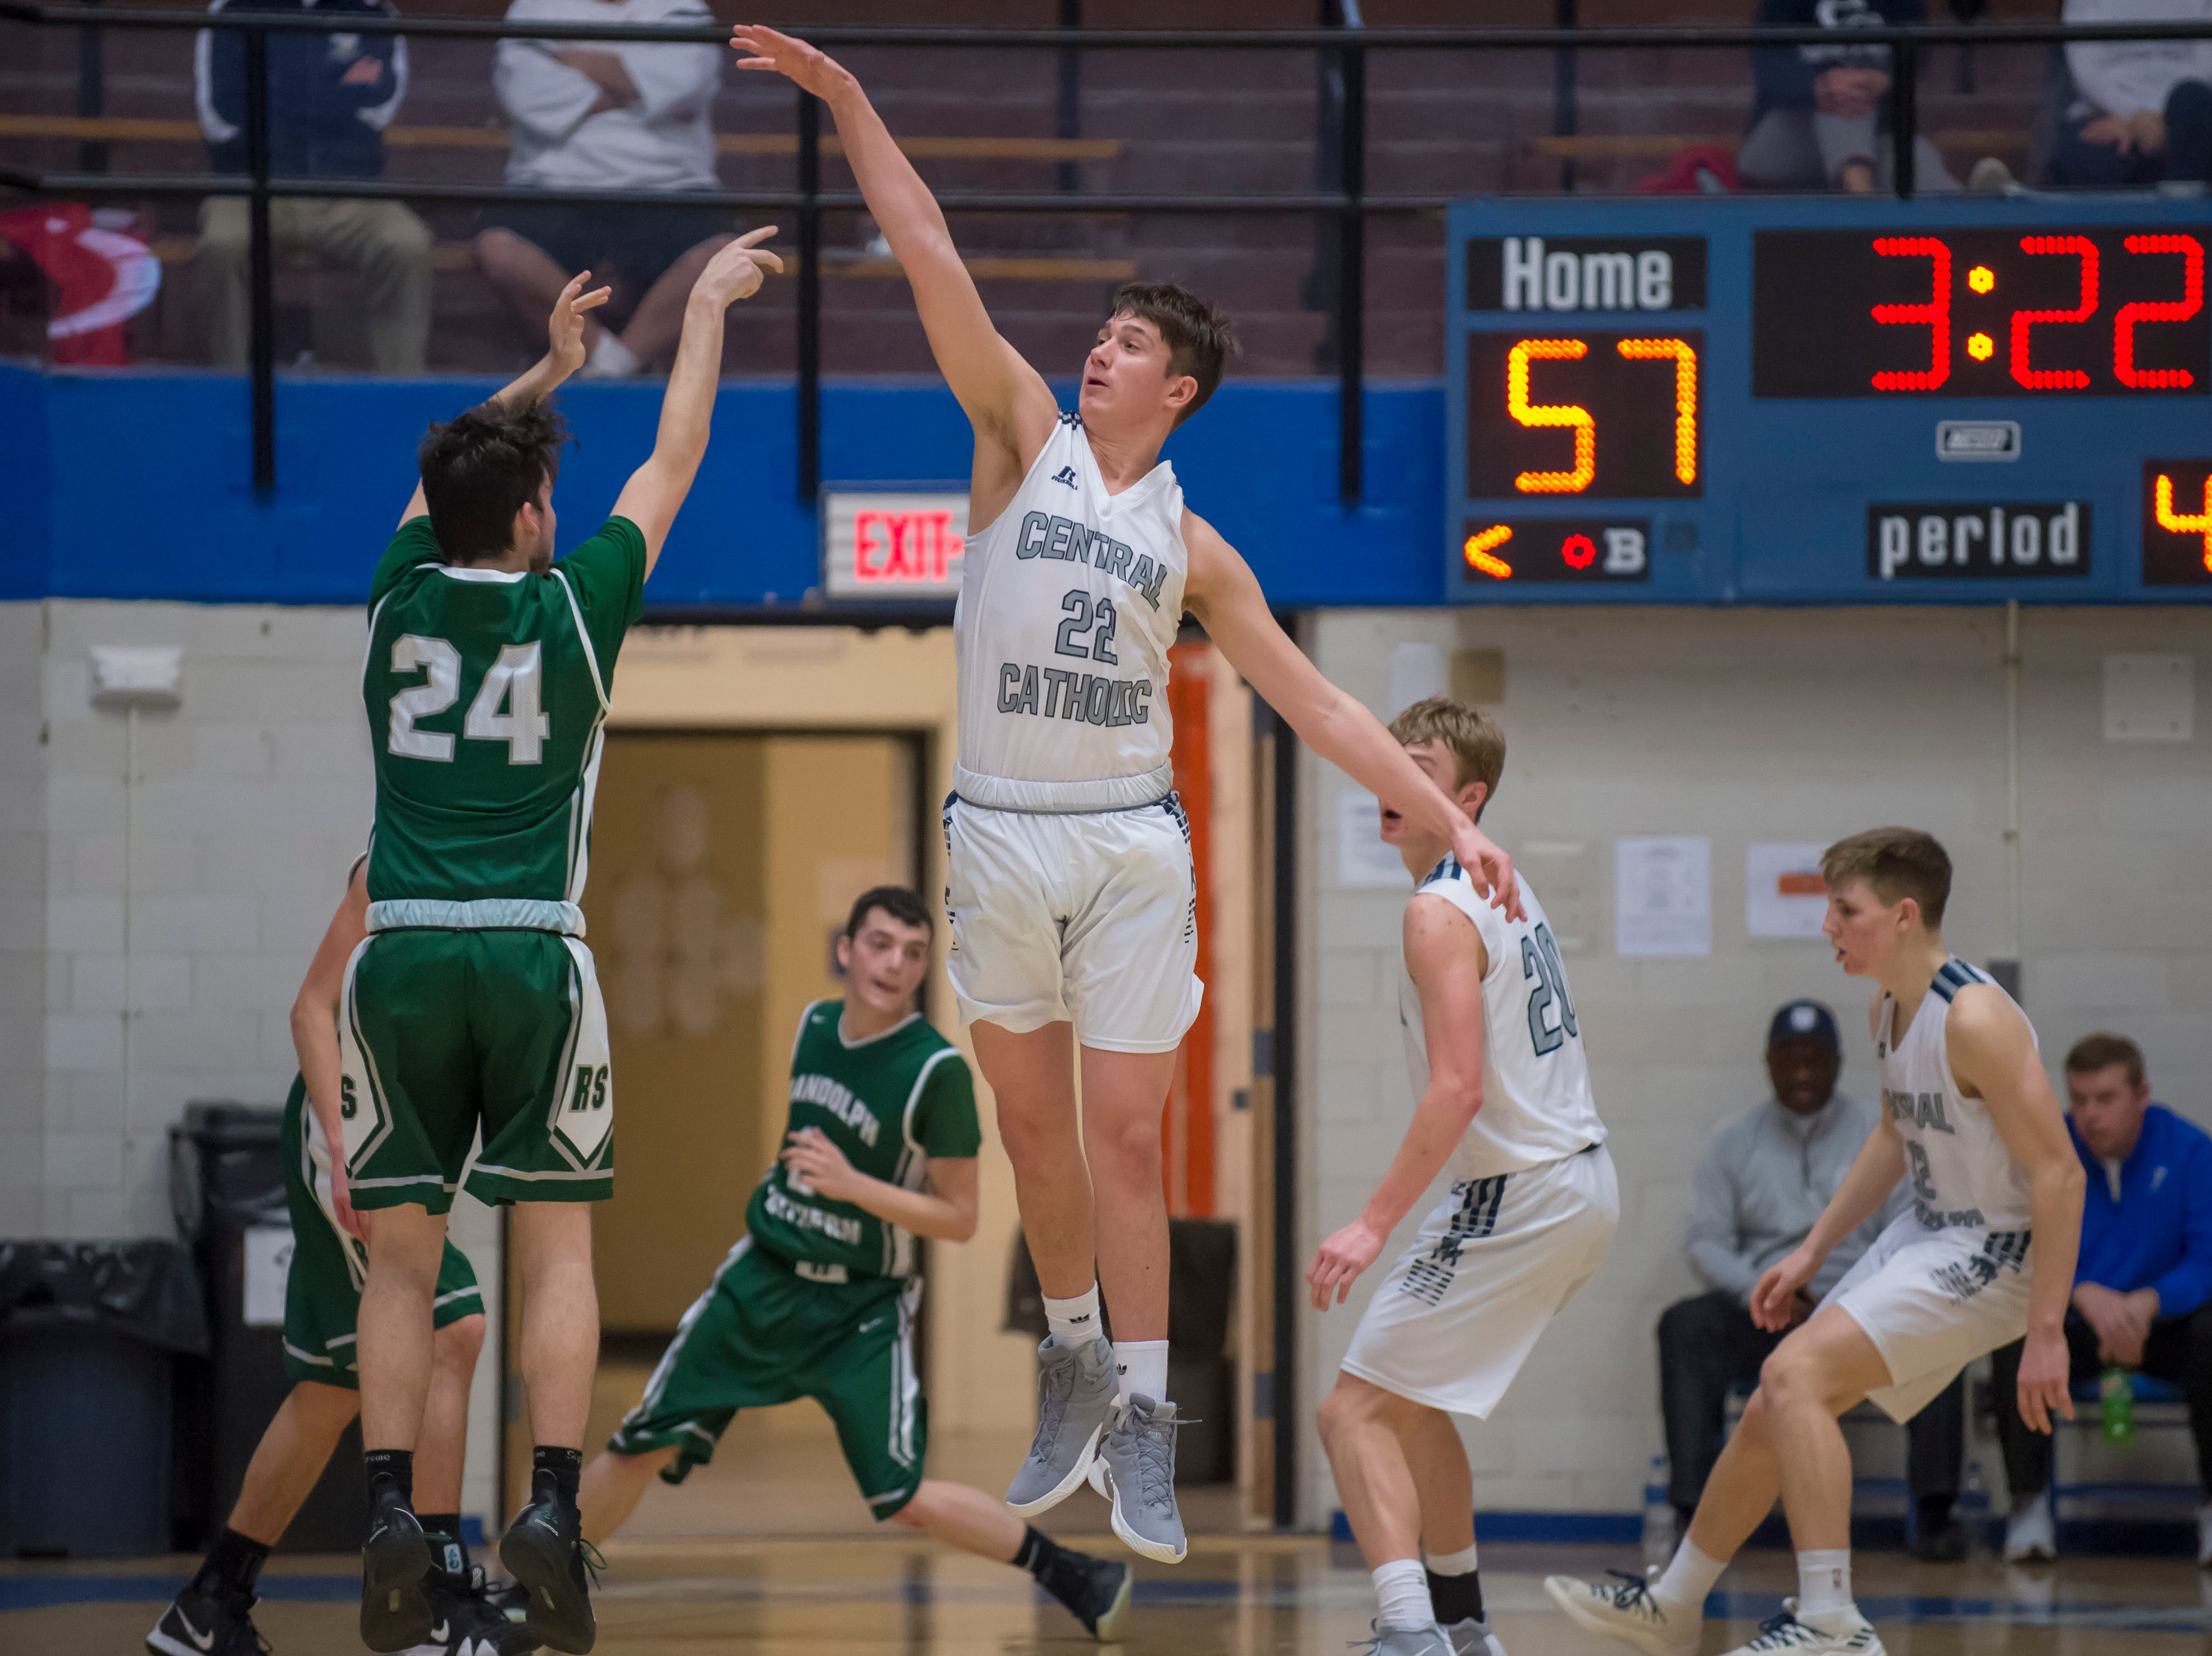 Action from the first round of the Regional between Central Catholic and Randolph Southern from Case Arena on 3/9/19 - Clark Barrett